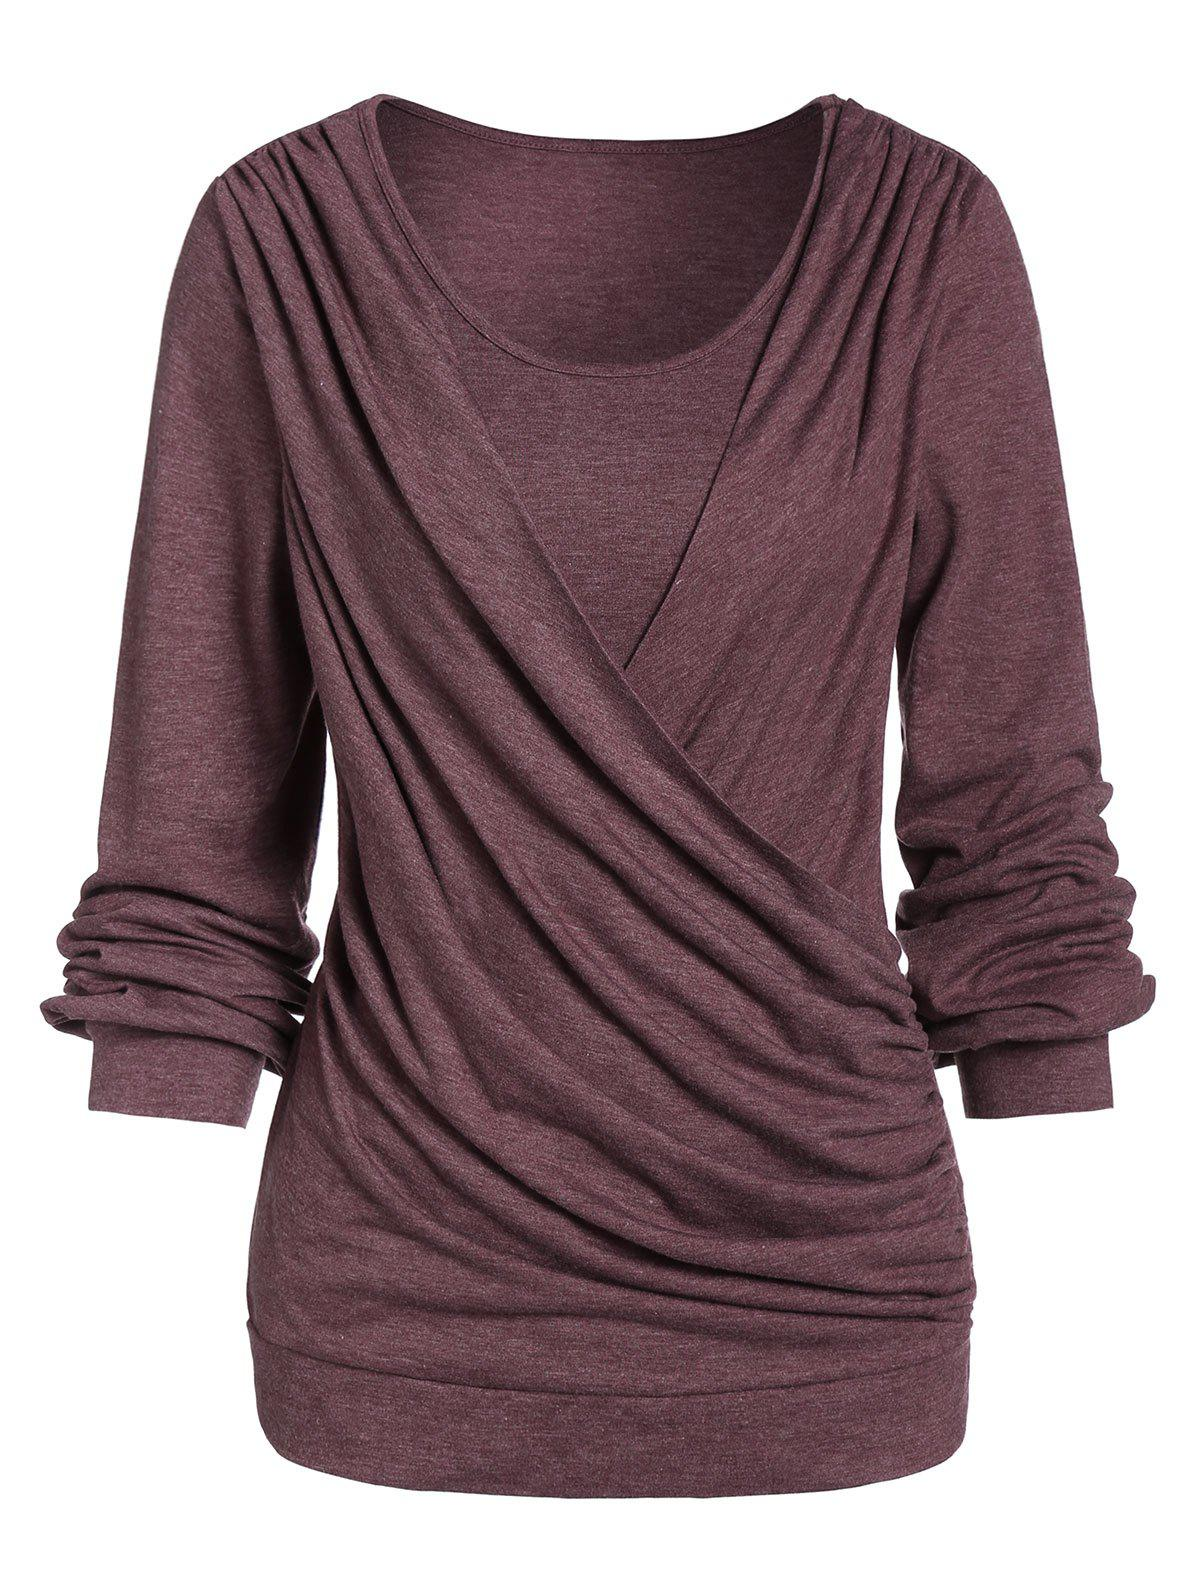 Shop Space Dye Round Collar Long Sleeve T Shirt